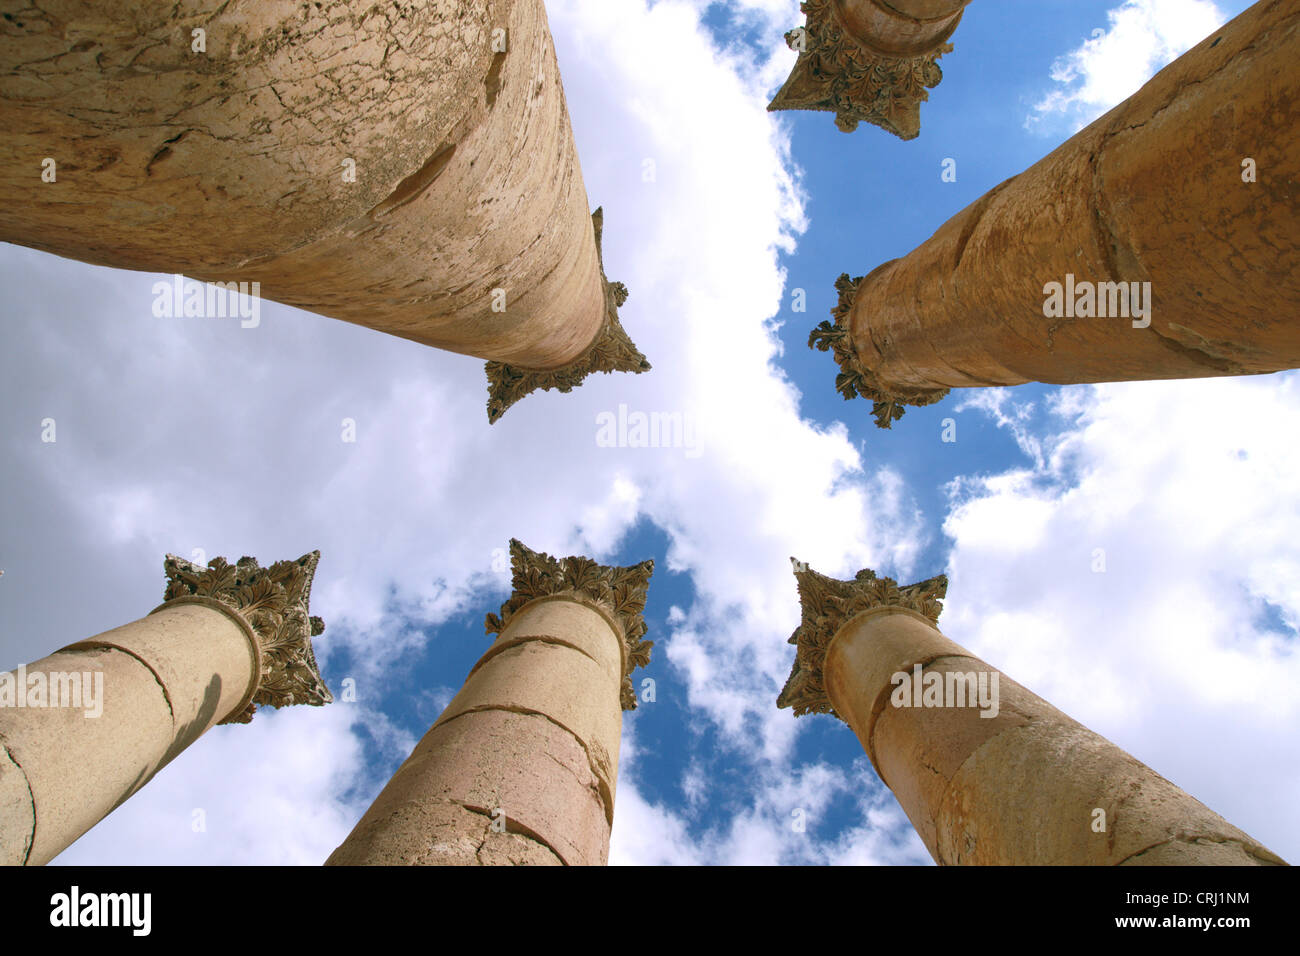 view at the zenith through the colums of the temple of Artemis in ancient city of Jerash, Jordan, Jerash - Stock Image